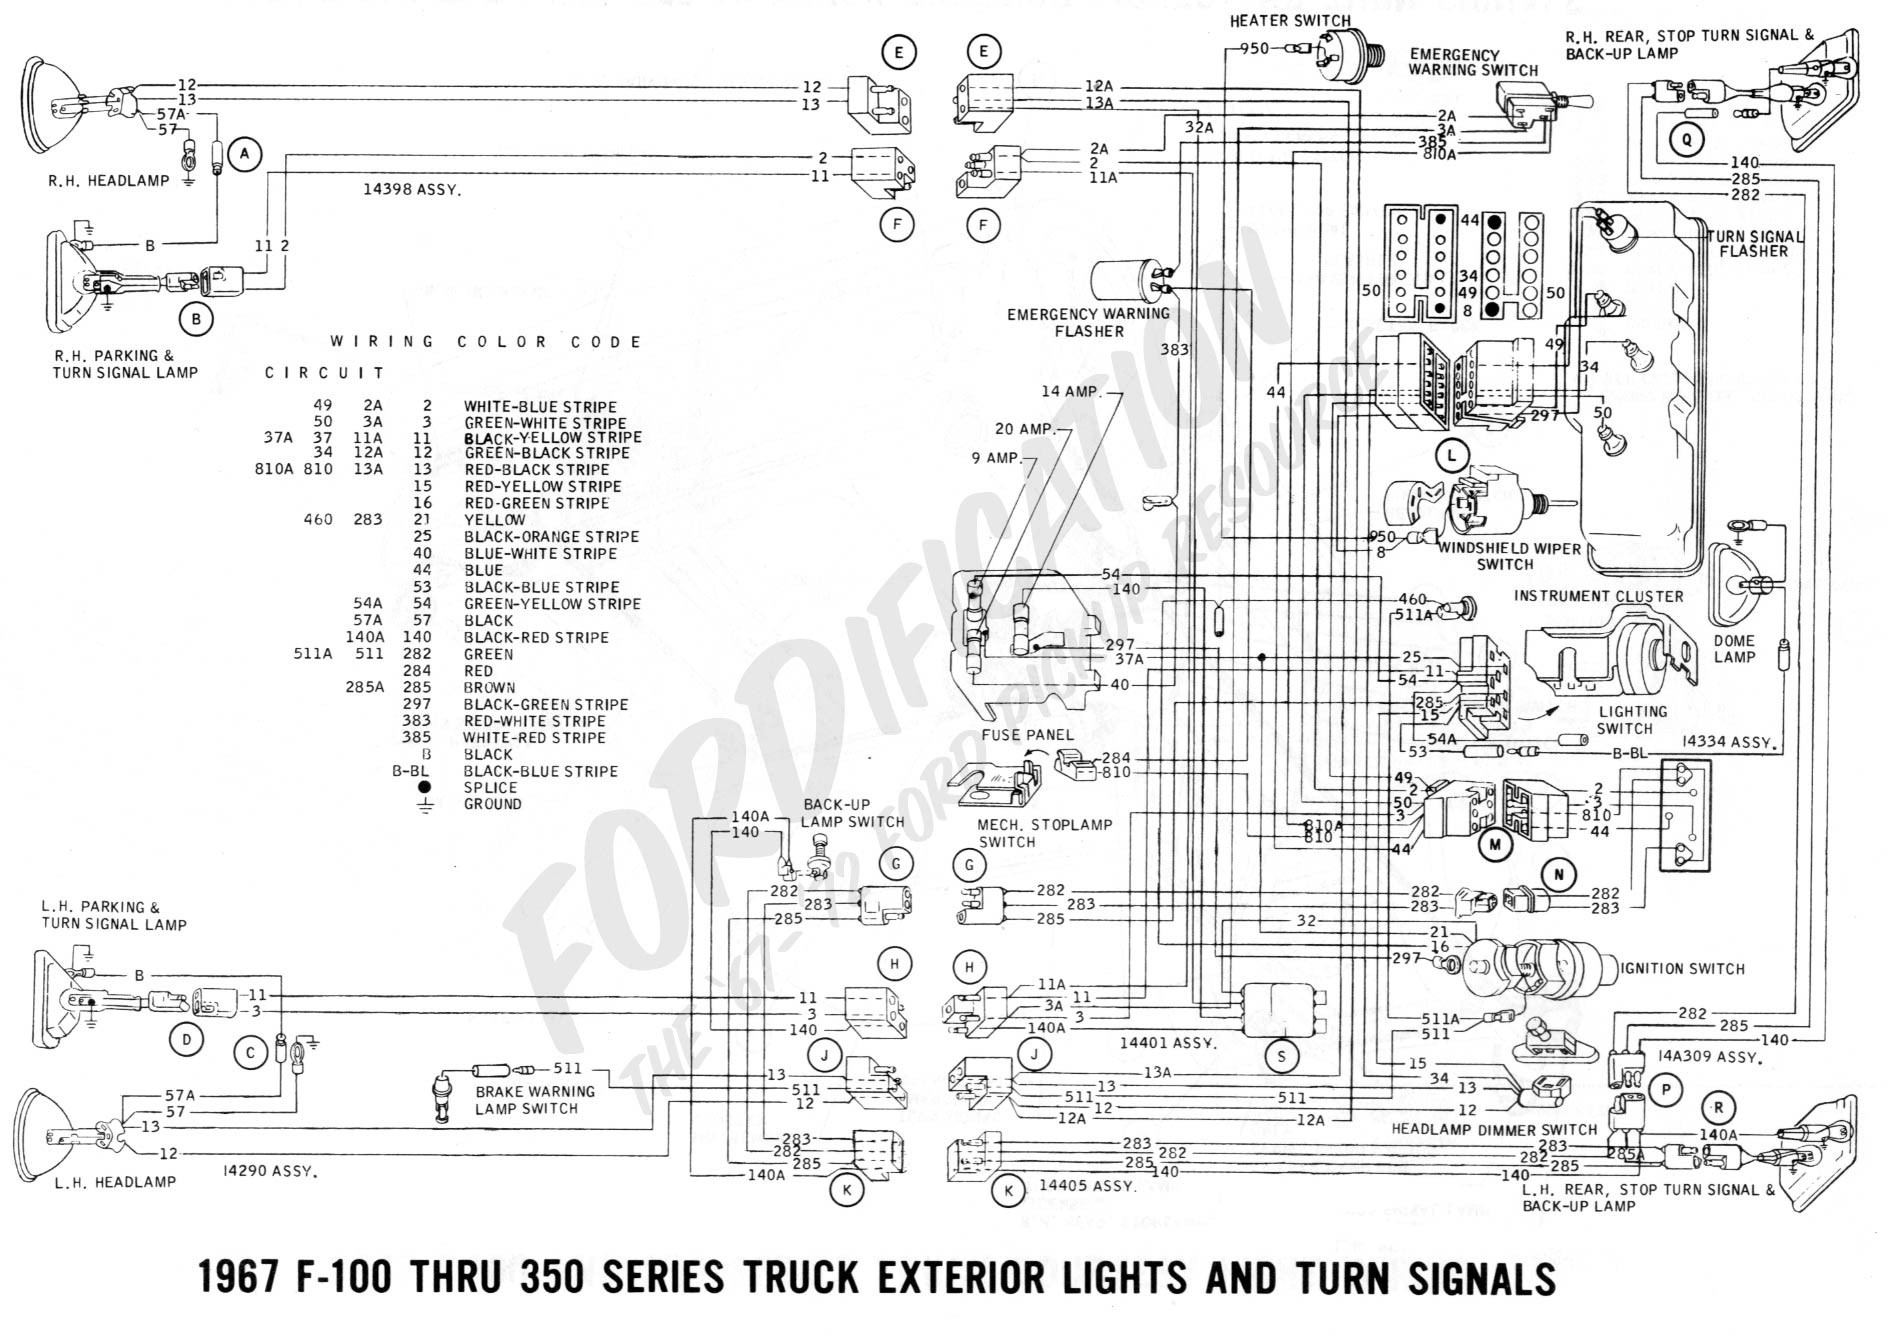 Typical Alternator Wiring Diagram Refrence 1965 Ford F100 Alternator Wiring Diagram Wiring Diagram